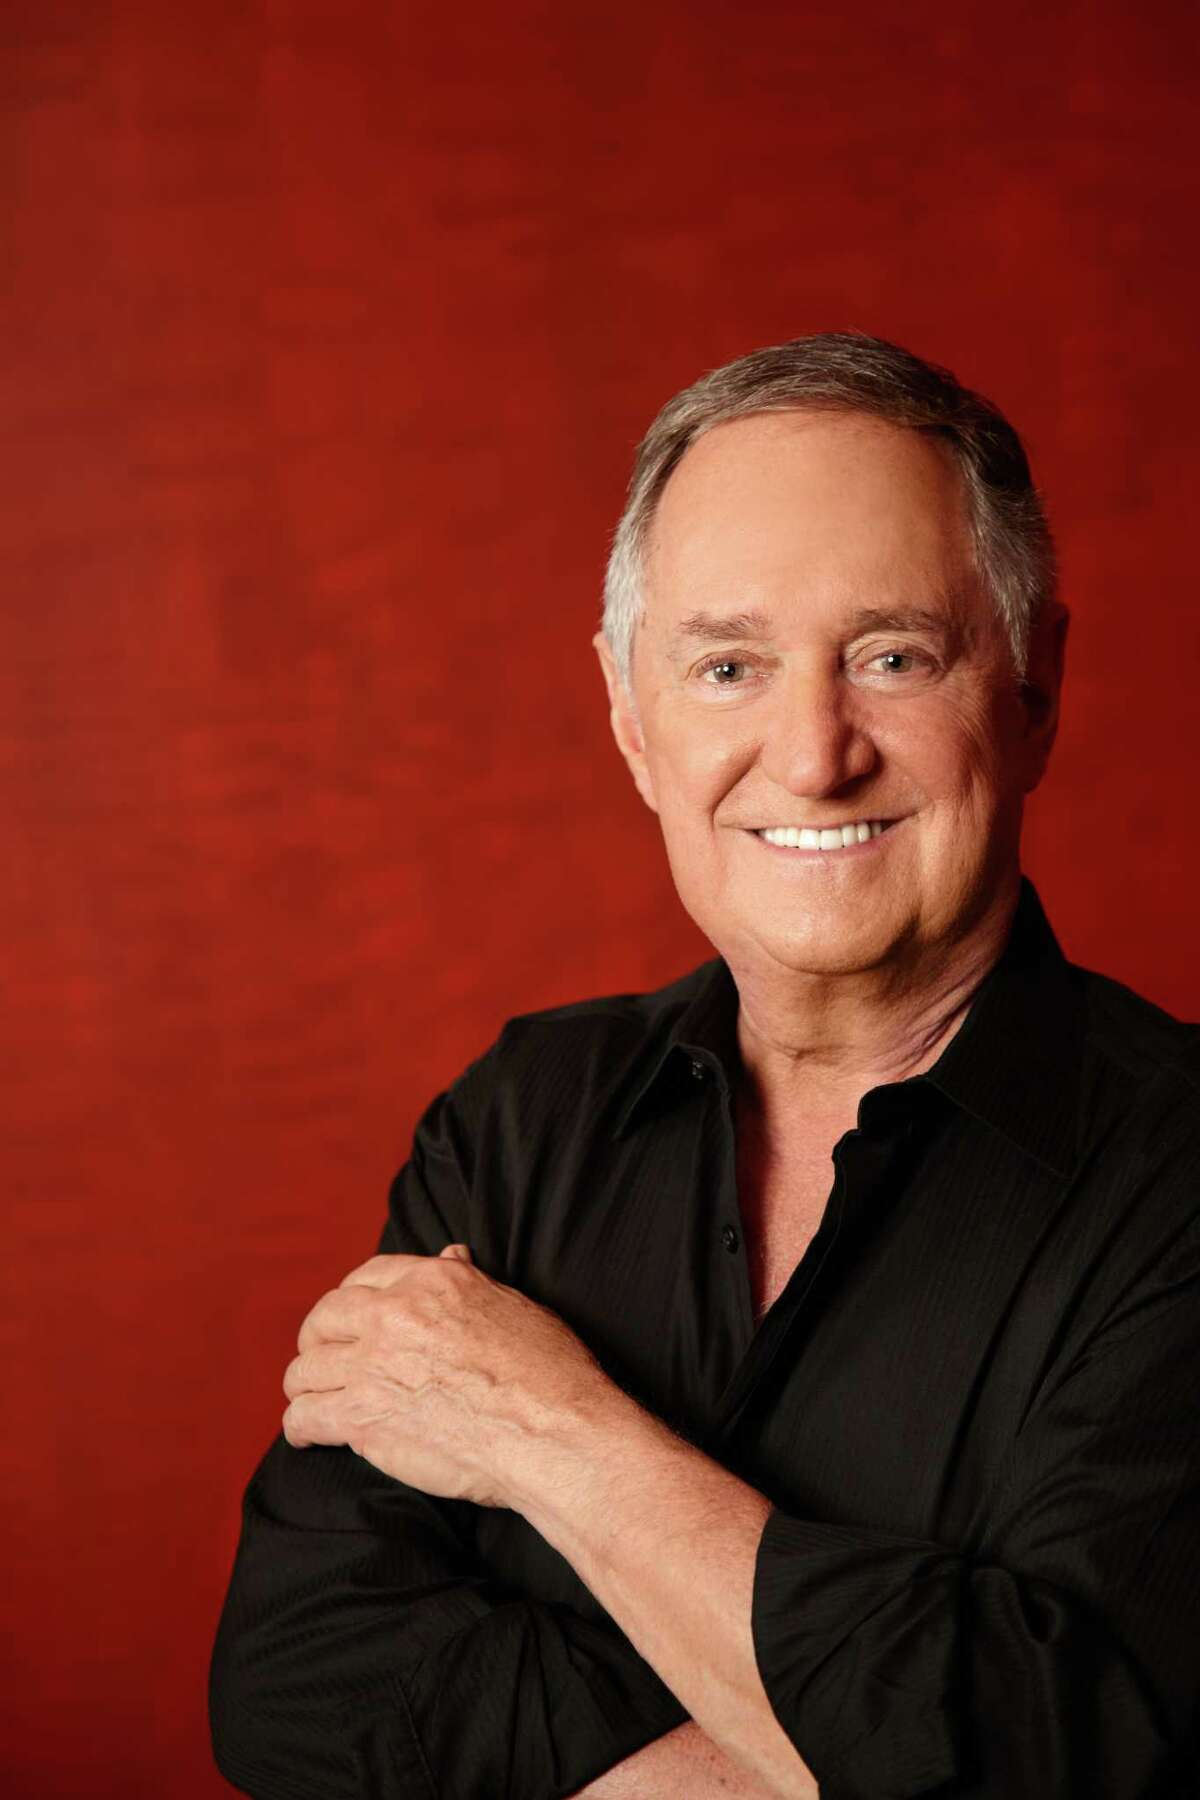 Neil Sedaka will perform a concert at Rivers Casino & Resort on Friday, April 17 in the casino's Event Center.